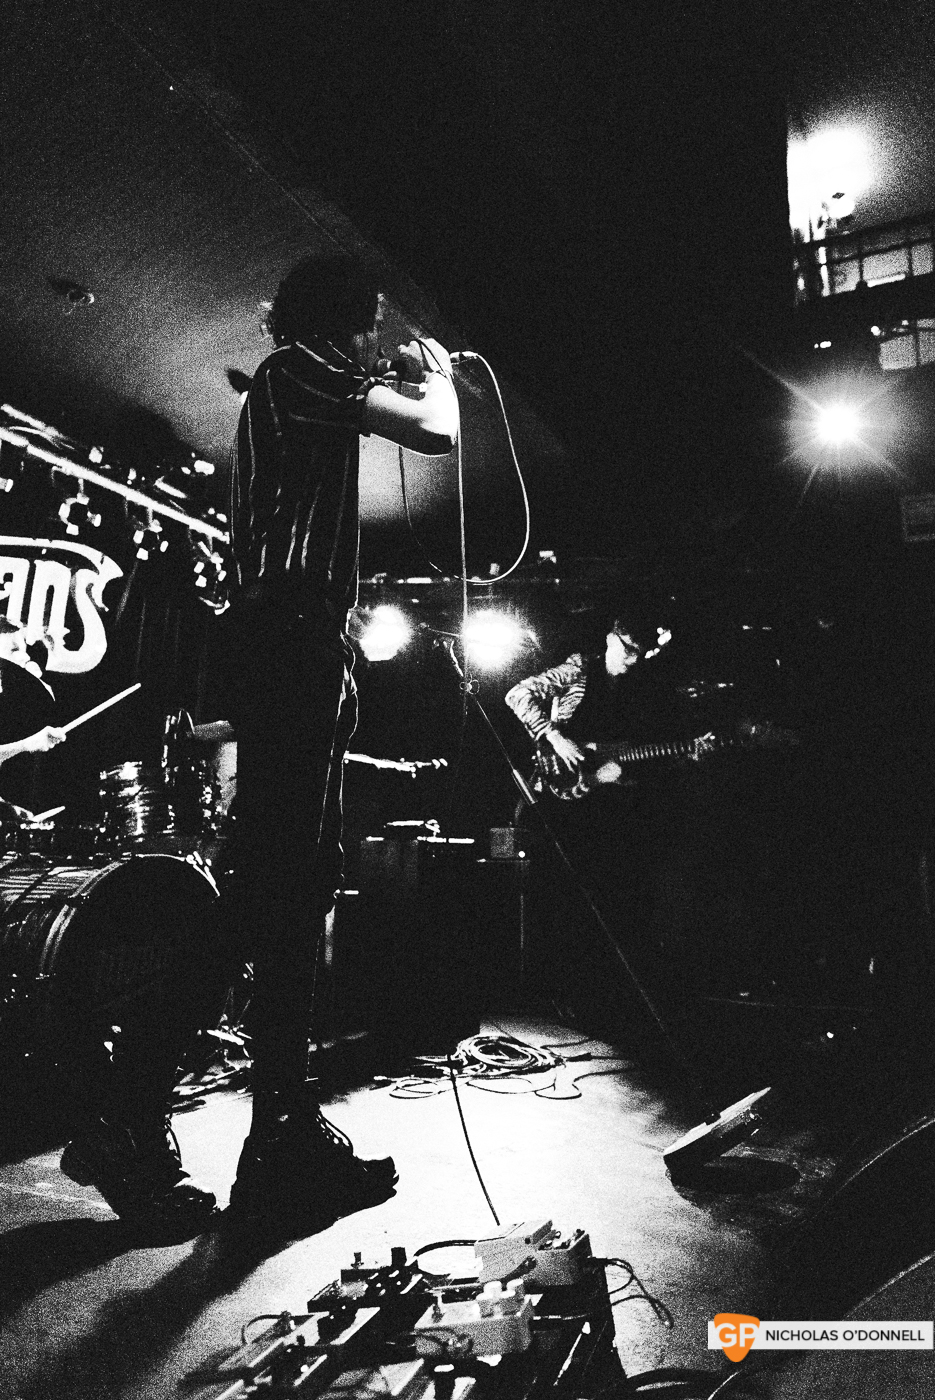 Support 1- Nerves opening for Mattiel in Whelan's. Photos by Nicholas O'Donnell. (6 of 6)